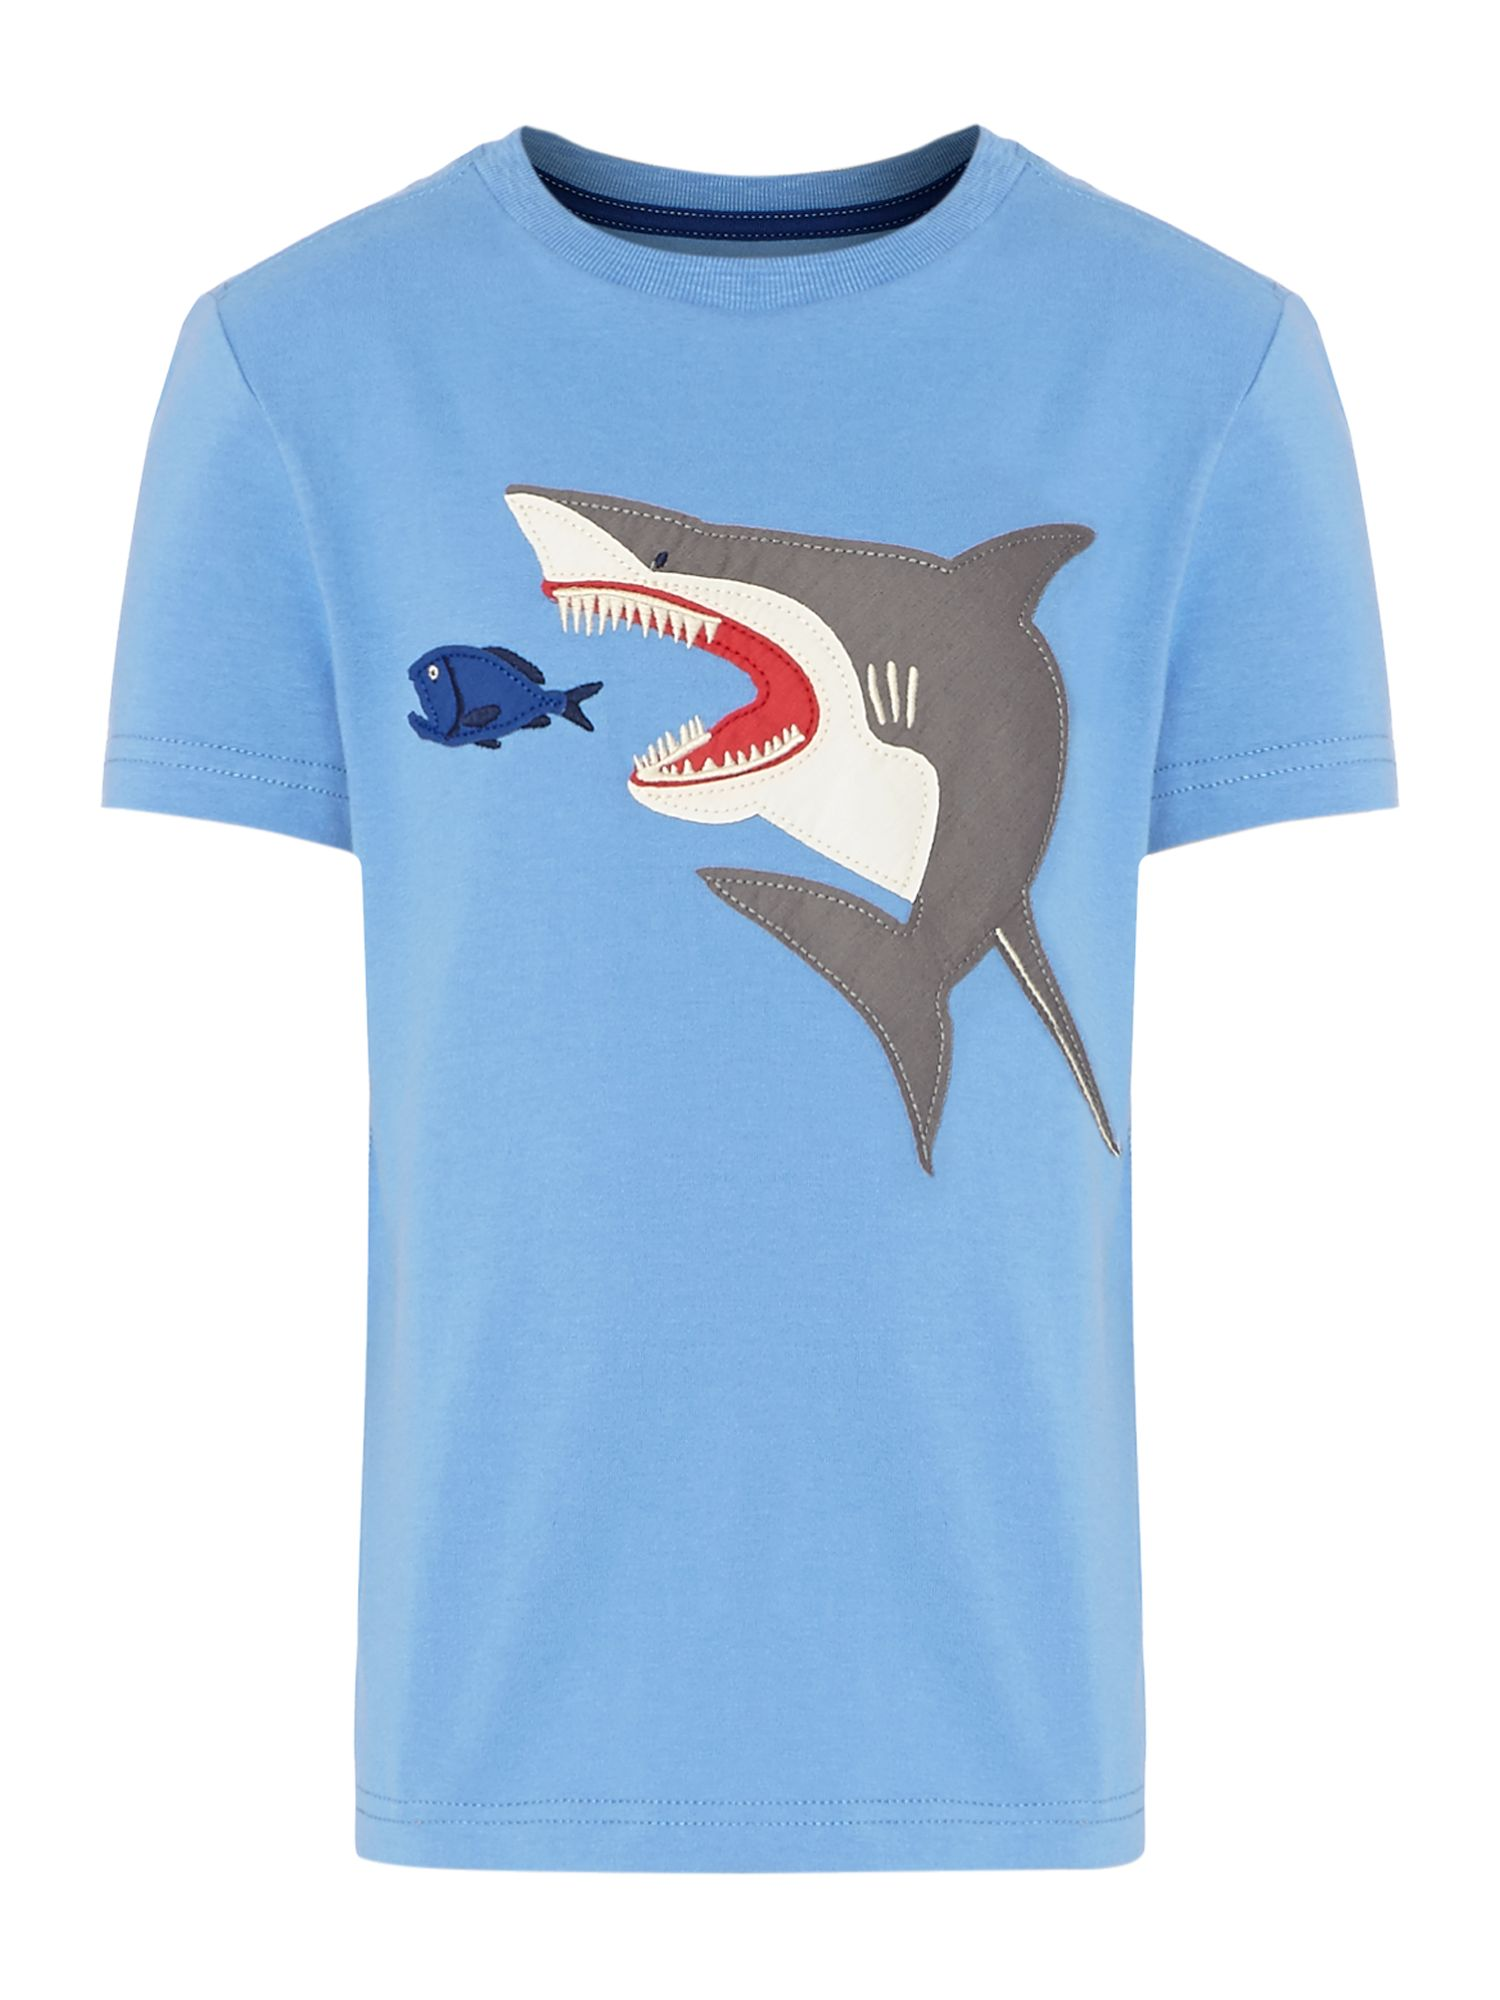 Boys shark applique t-shirt